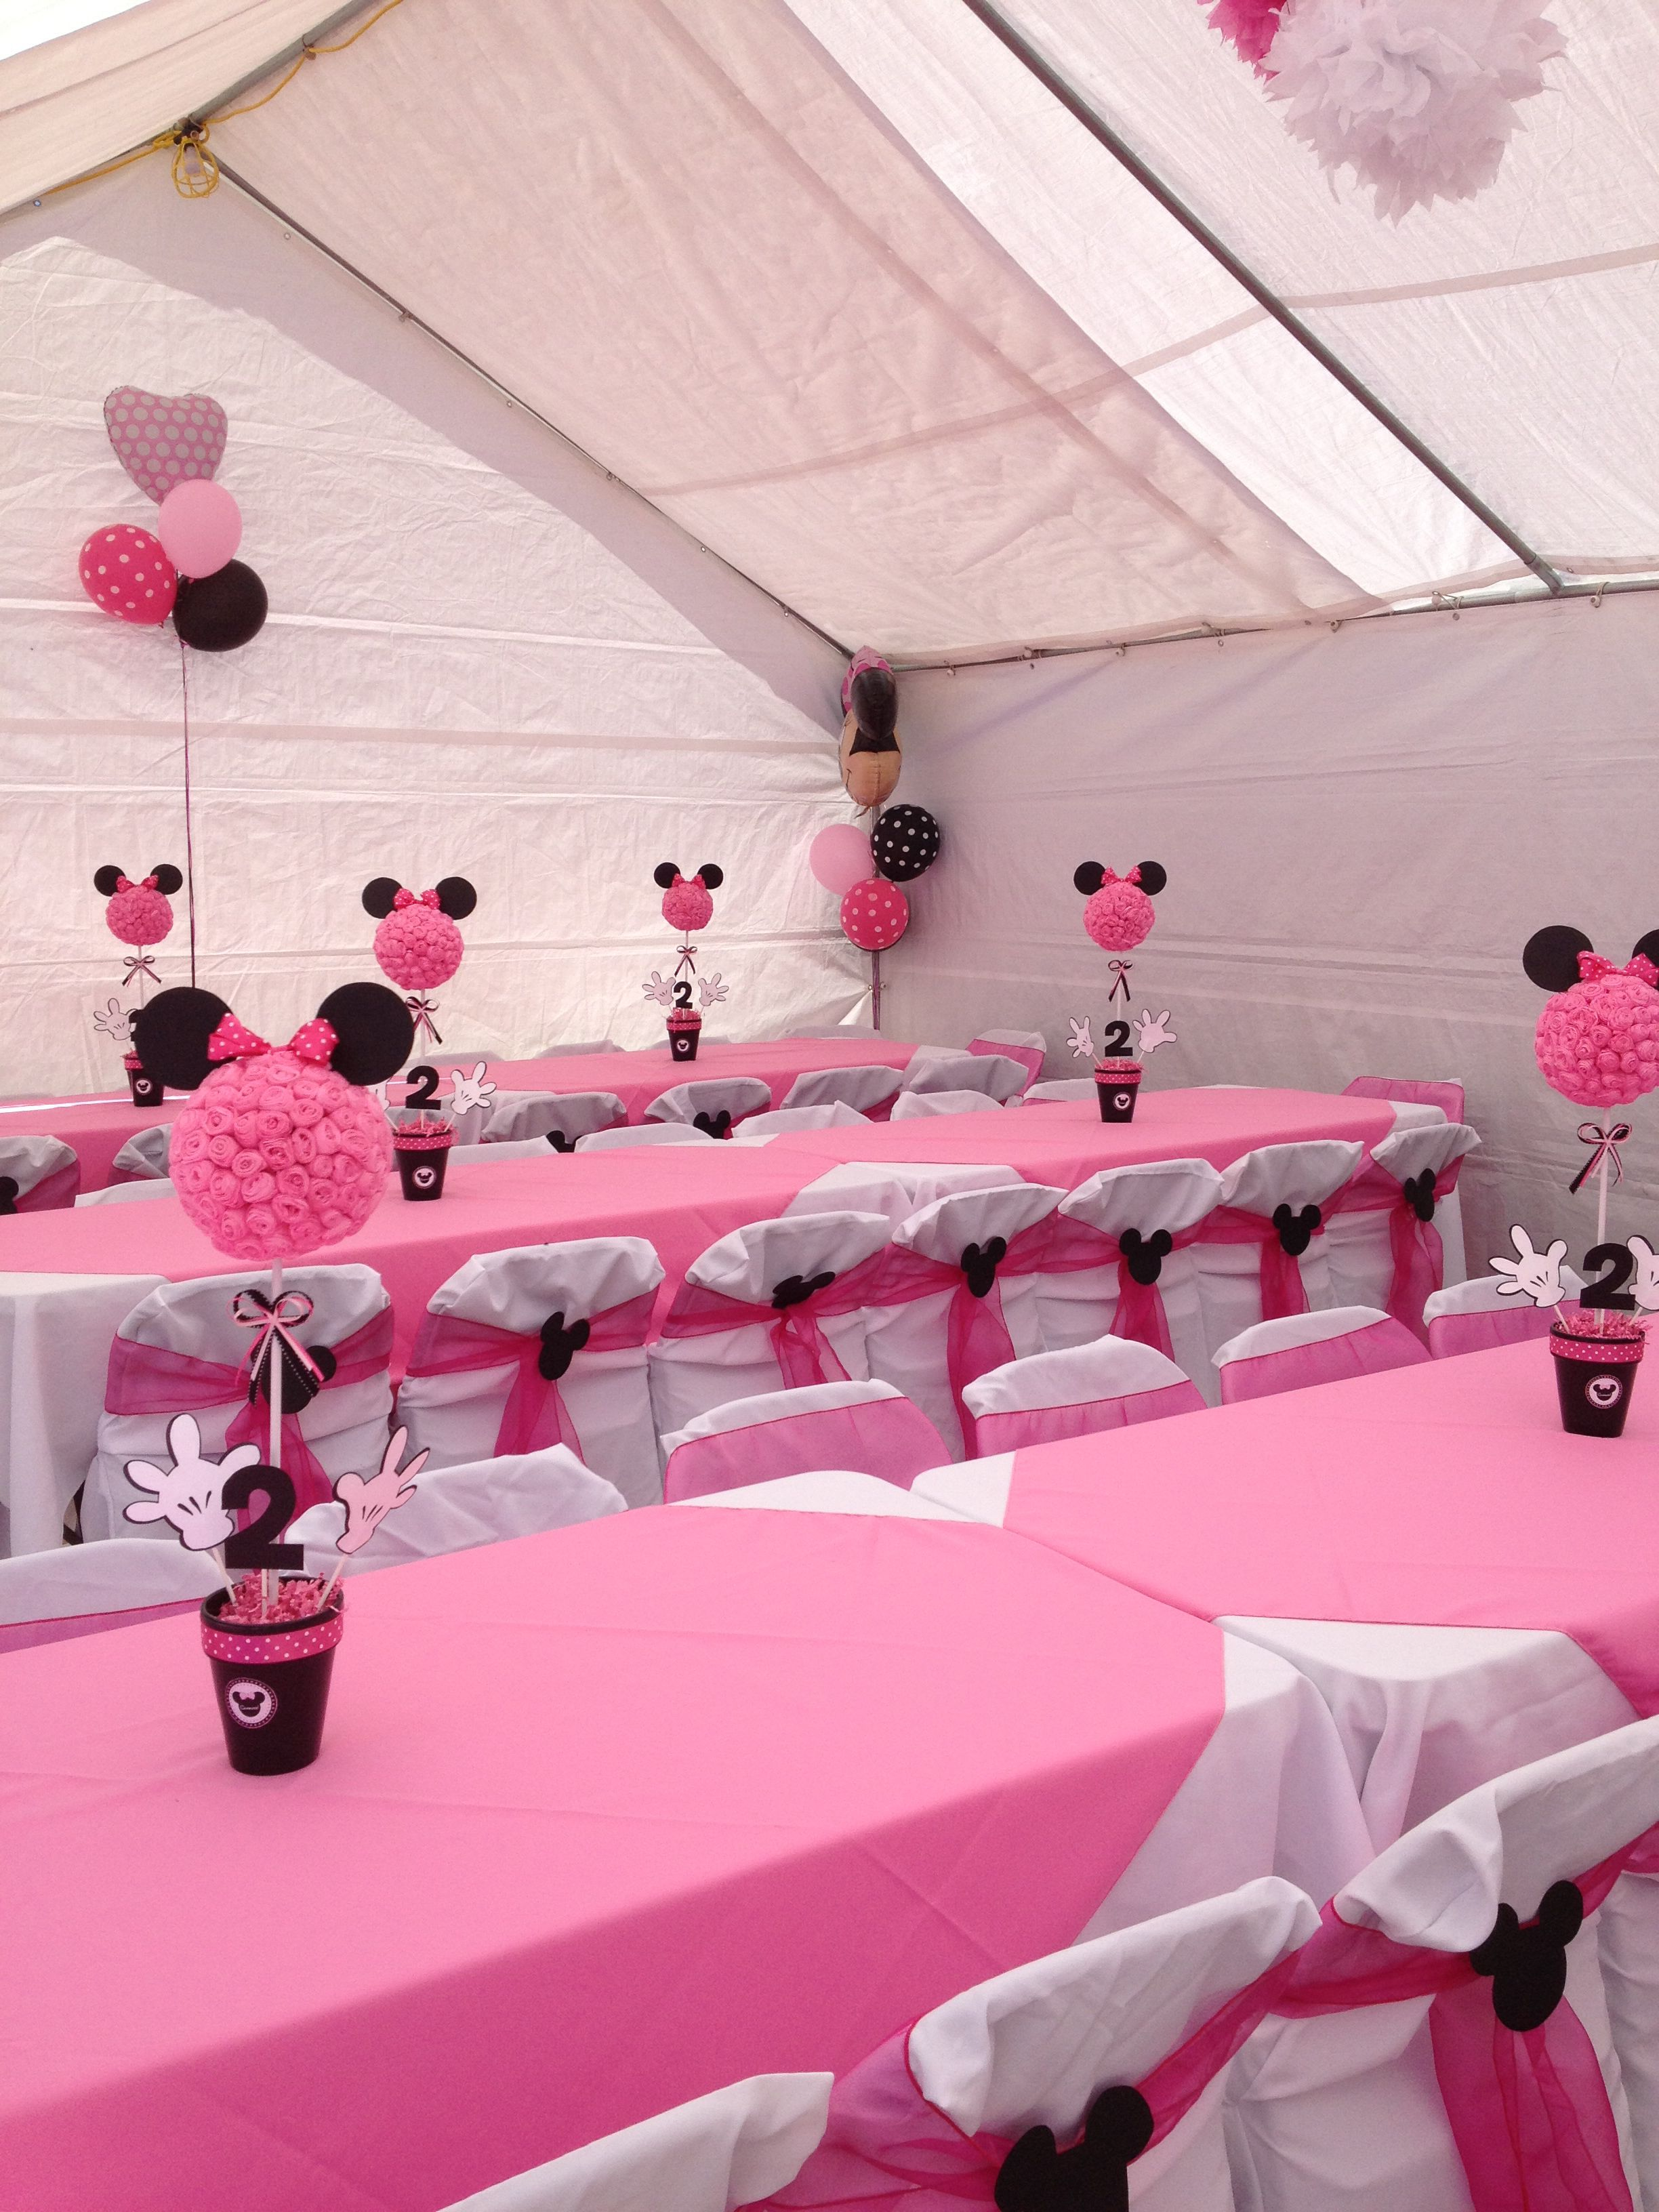 Pin by Manuella Isma on Minnie Mouse  Minnie birthday party